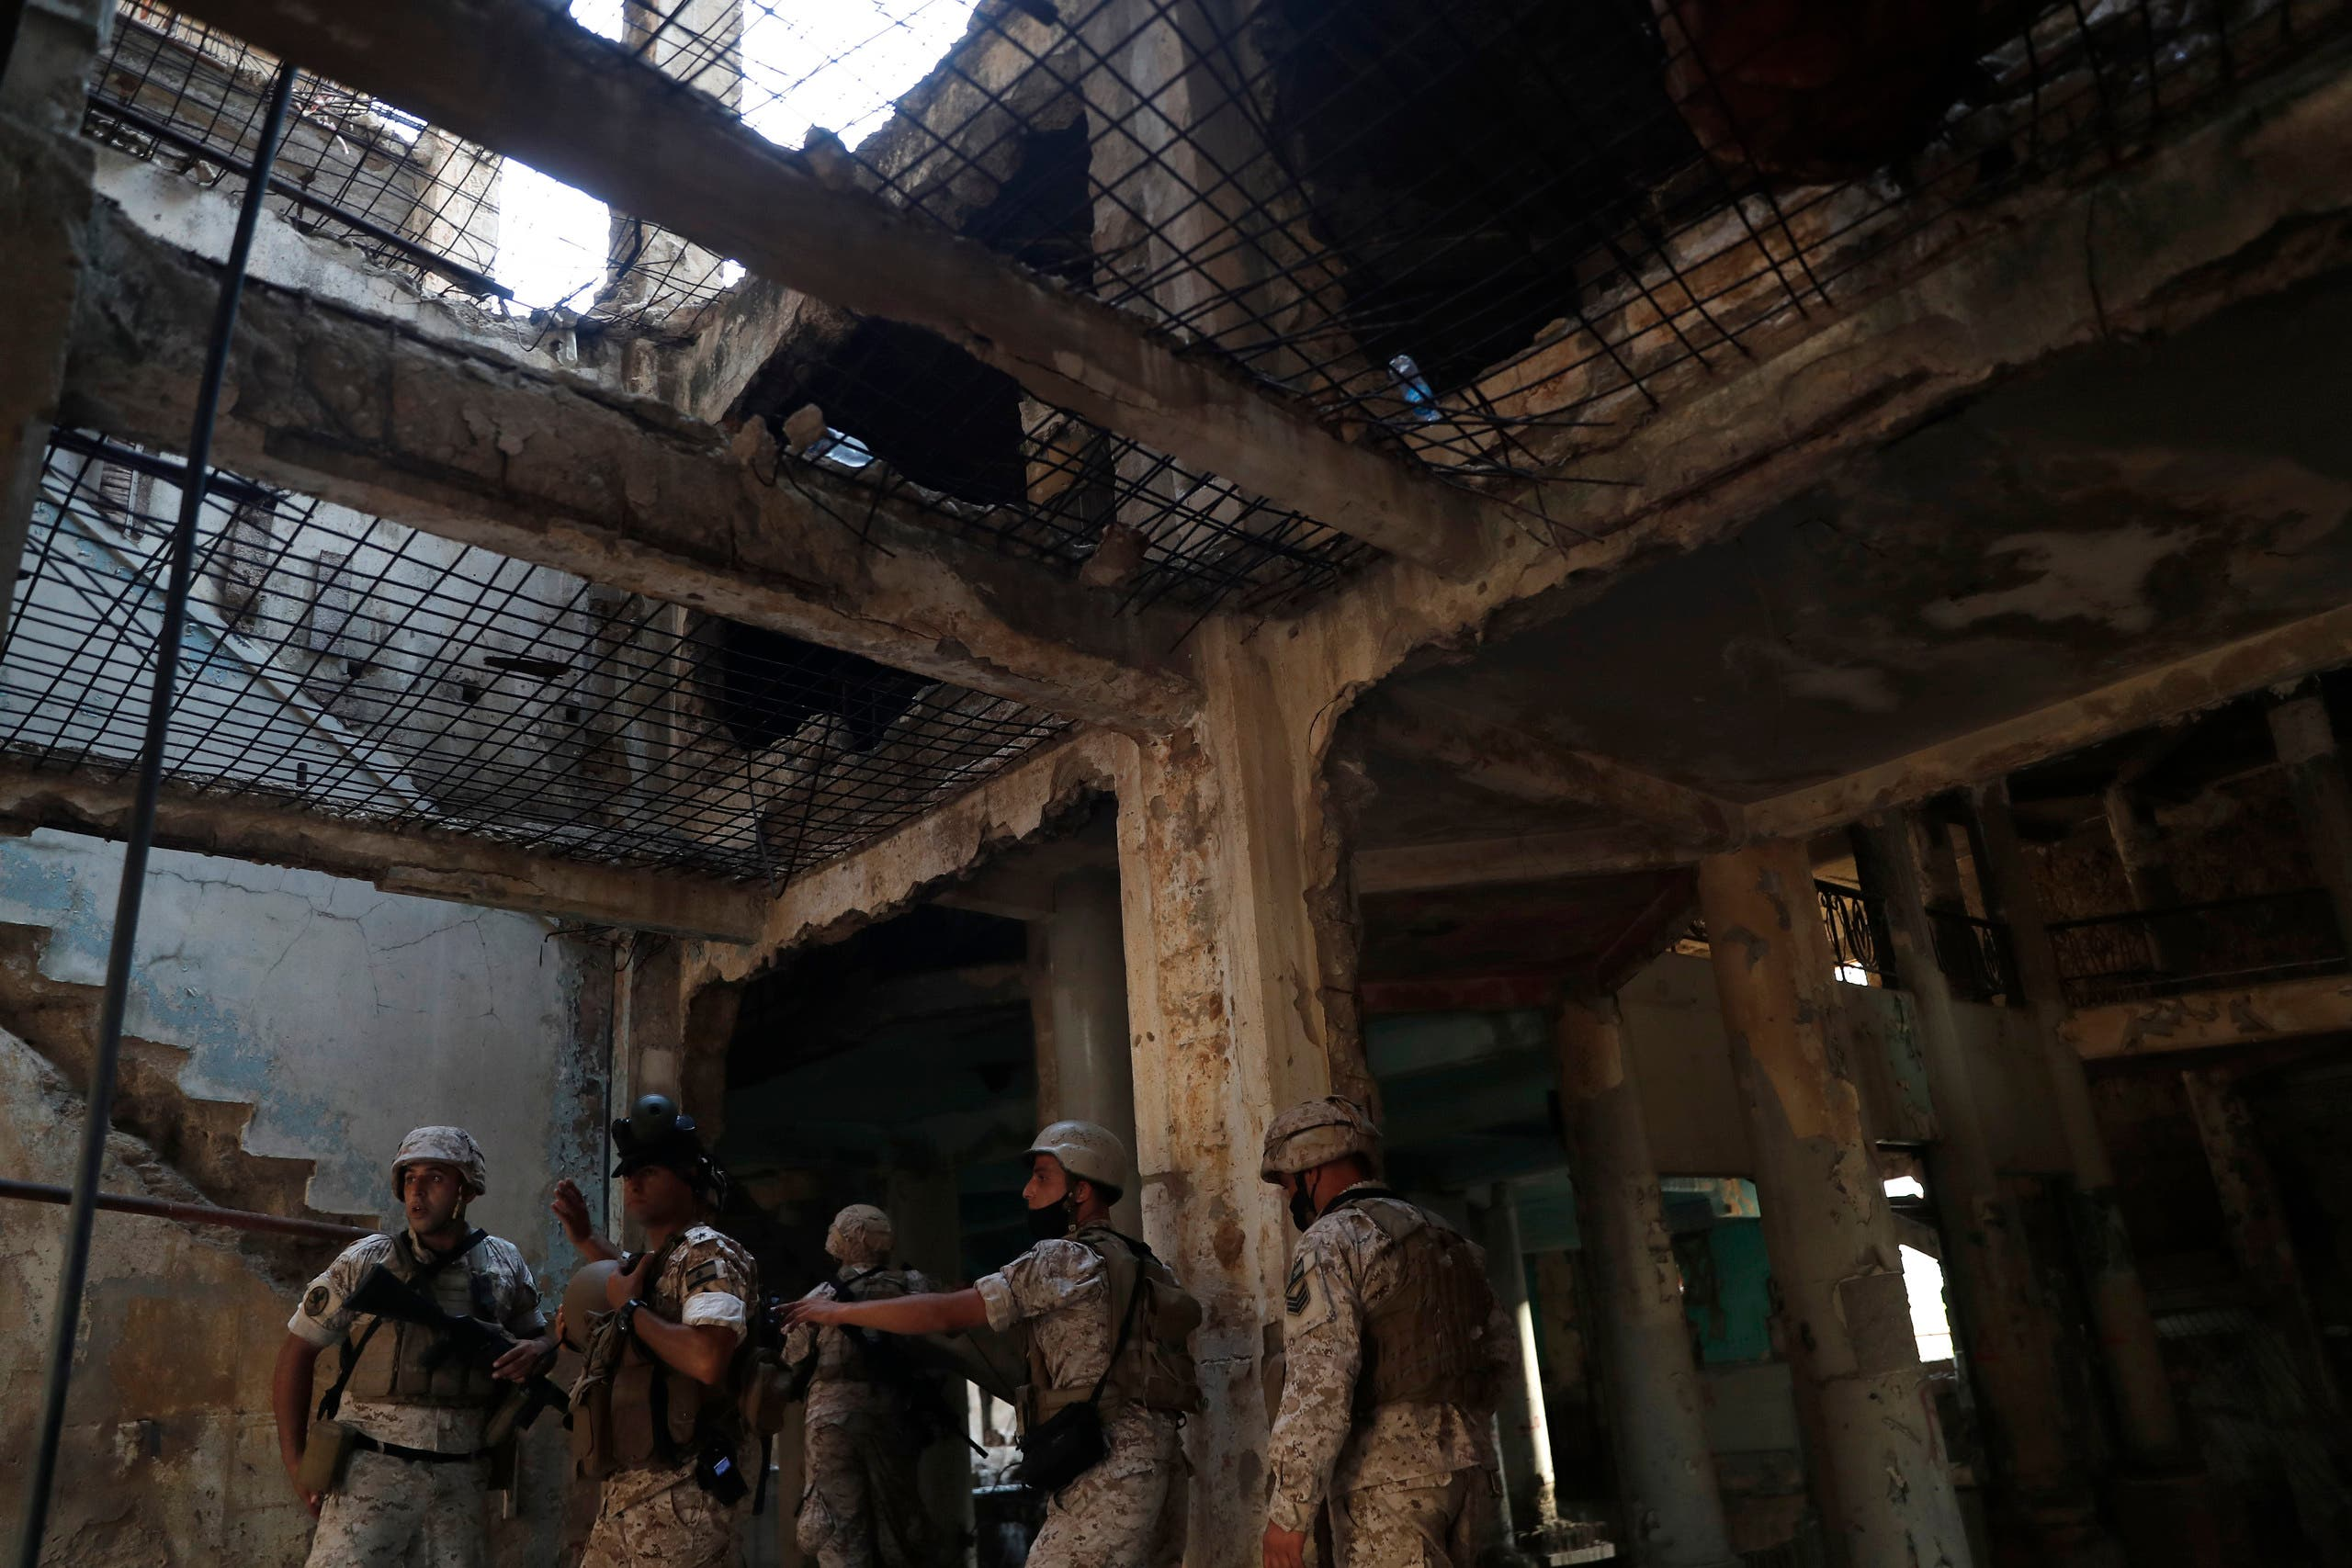 Lebanese soldiers gather inside a damaged building as they prepare to attack the anti-government protesters, who are trying to reach the Parliament building, during a protest against the political elites and the government, in Beirut, Lebanon, Saturday, Aug. 8, 2020. (AP)